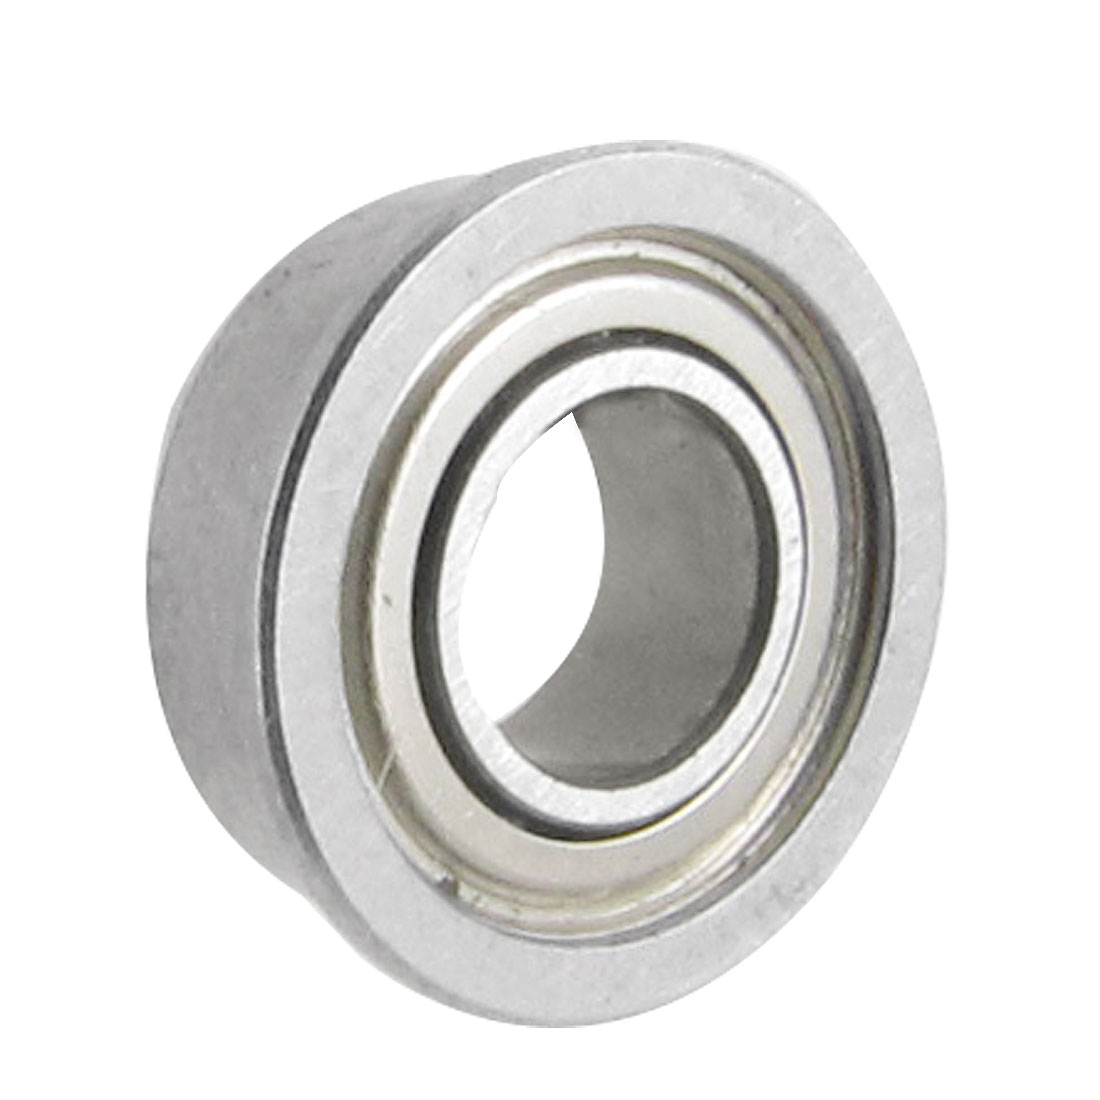 8mm x 4mm x 3mm Silver Tone Sealed Premium Flanged Ball Bearing